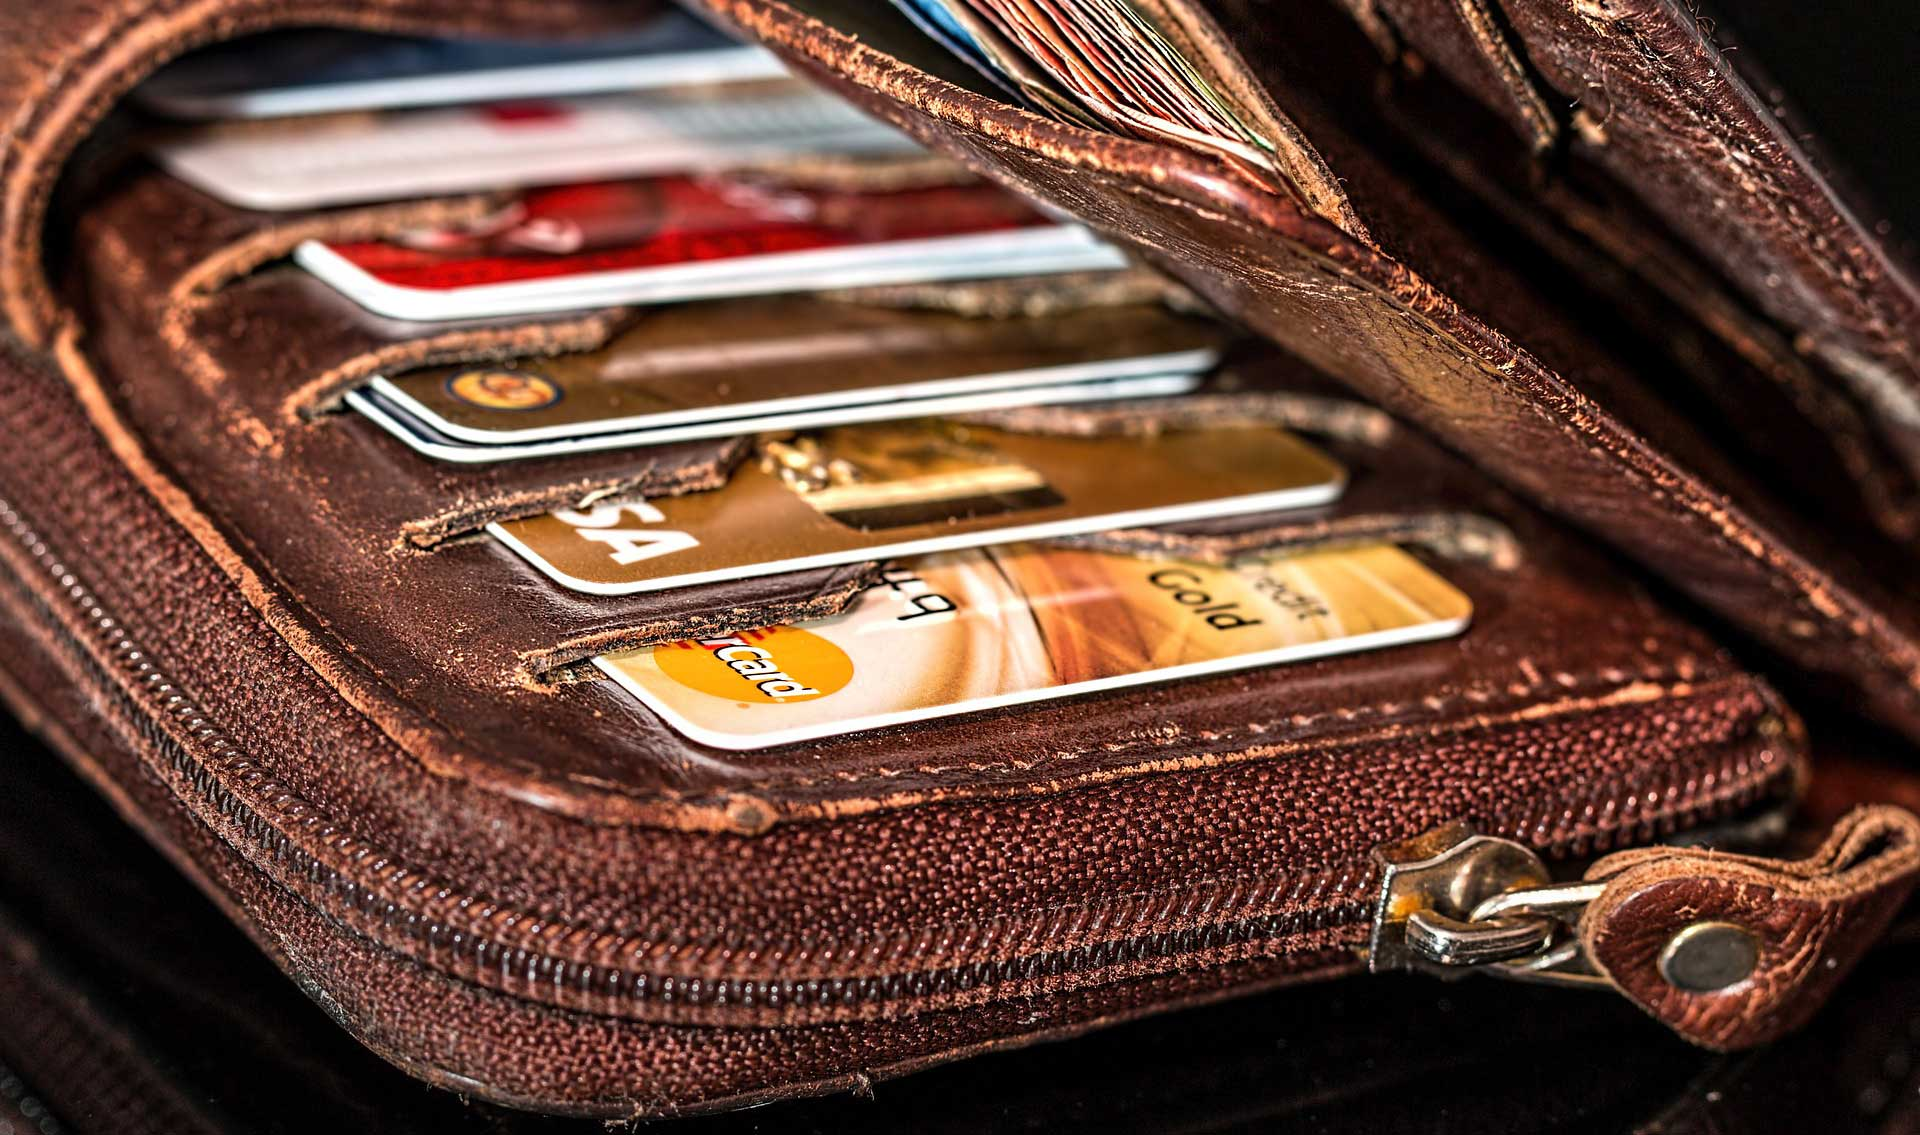 Wallet filled with credit cards